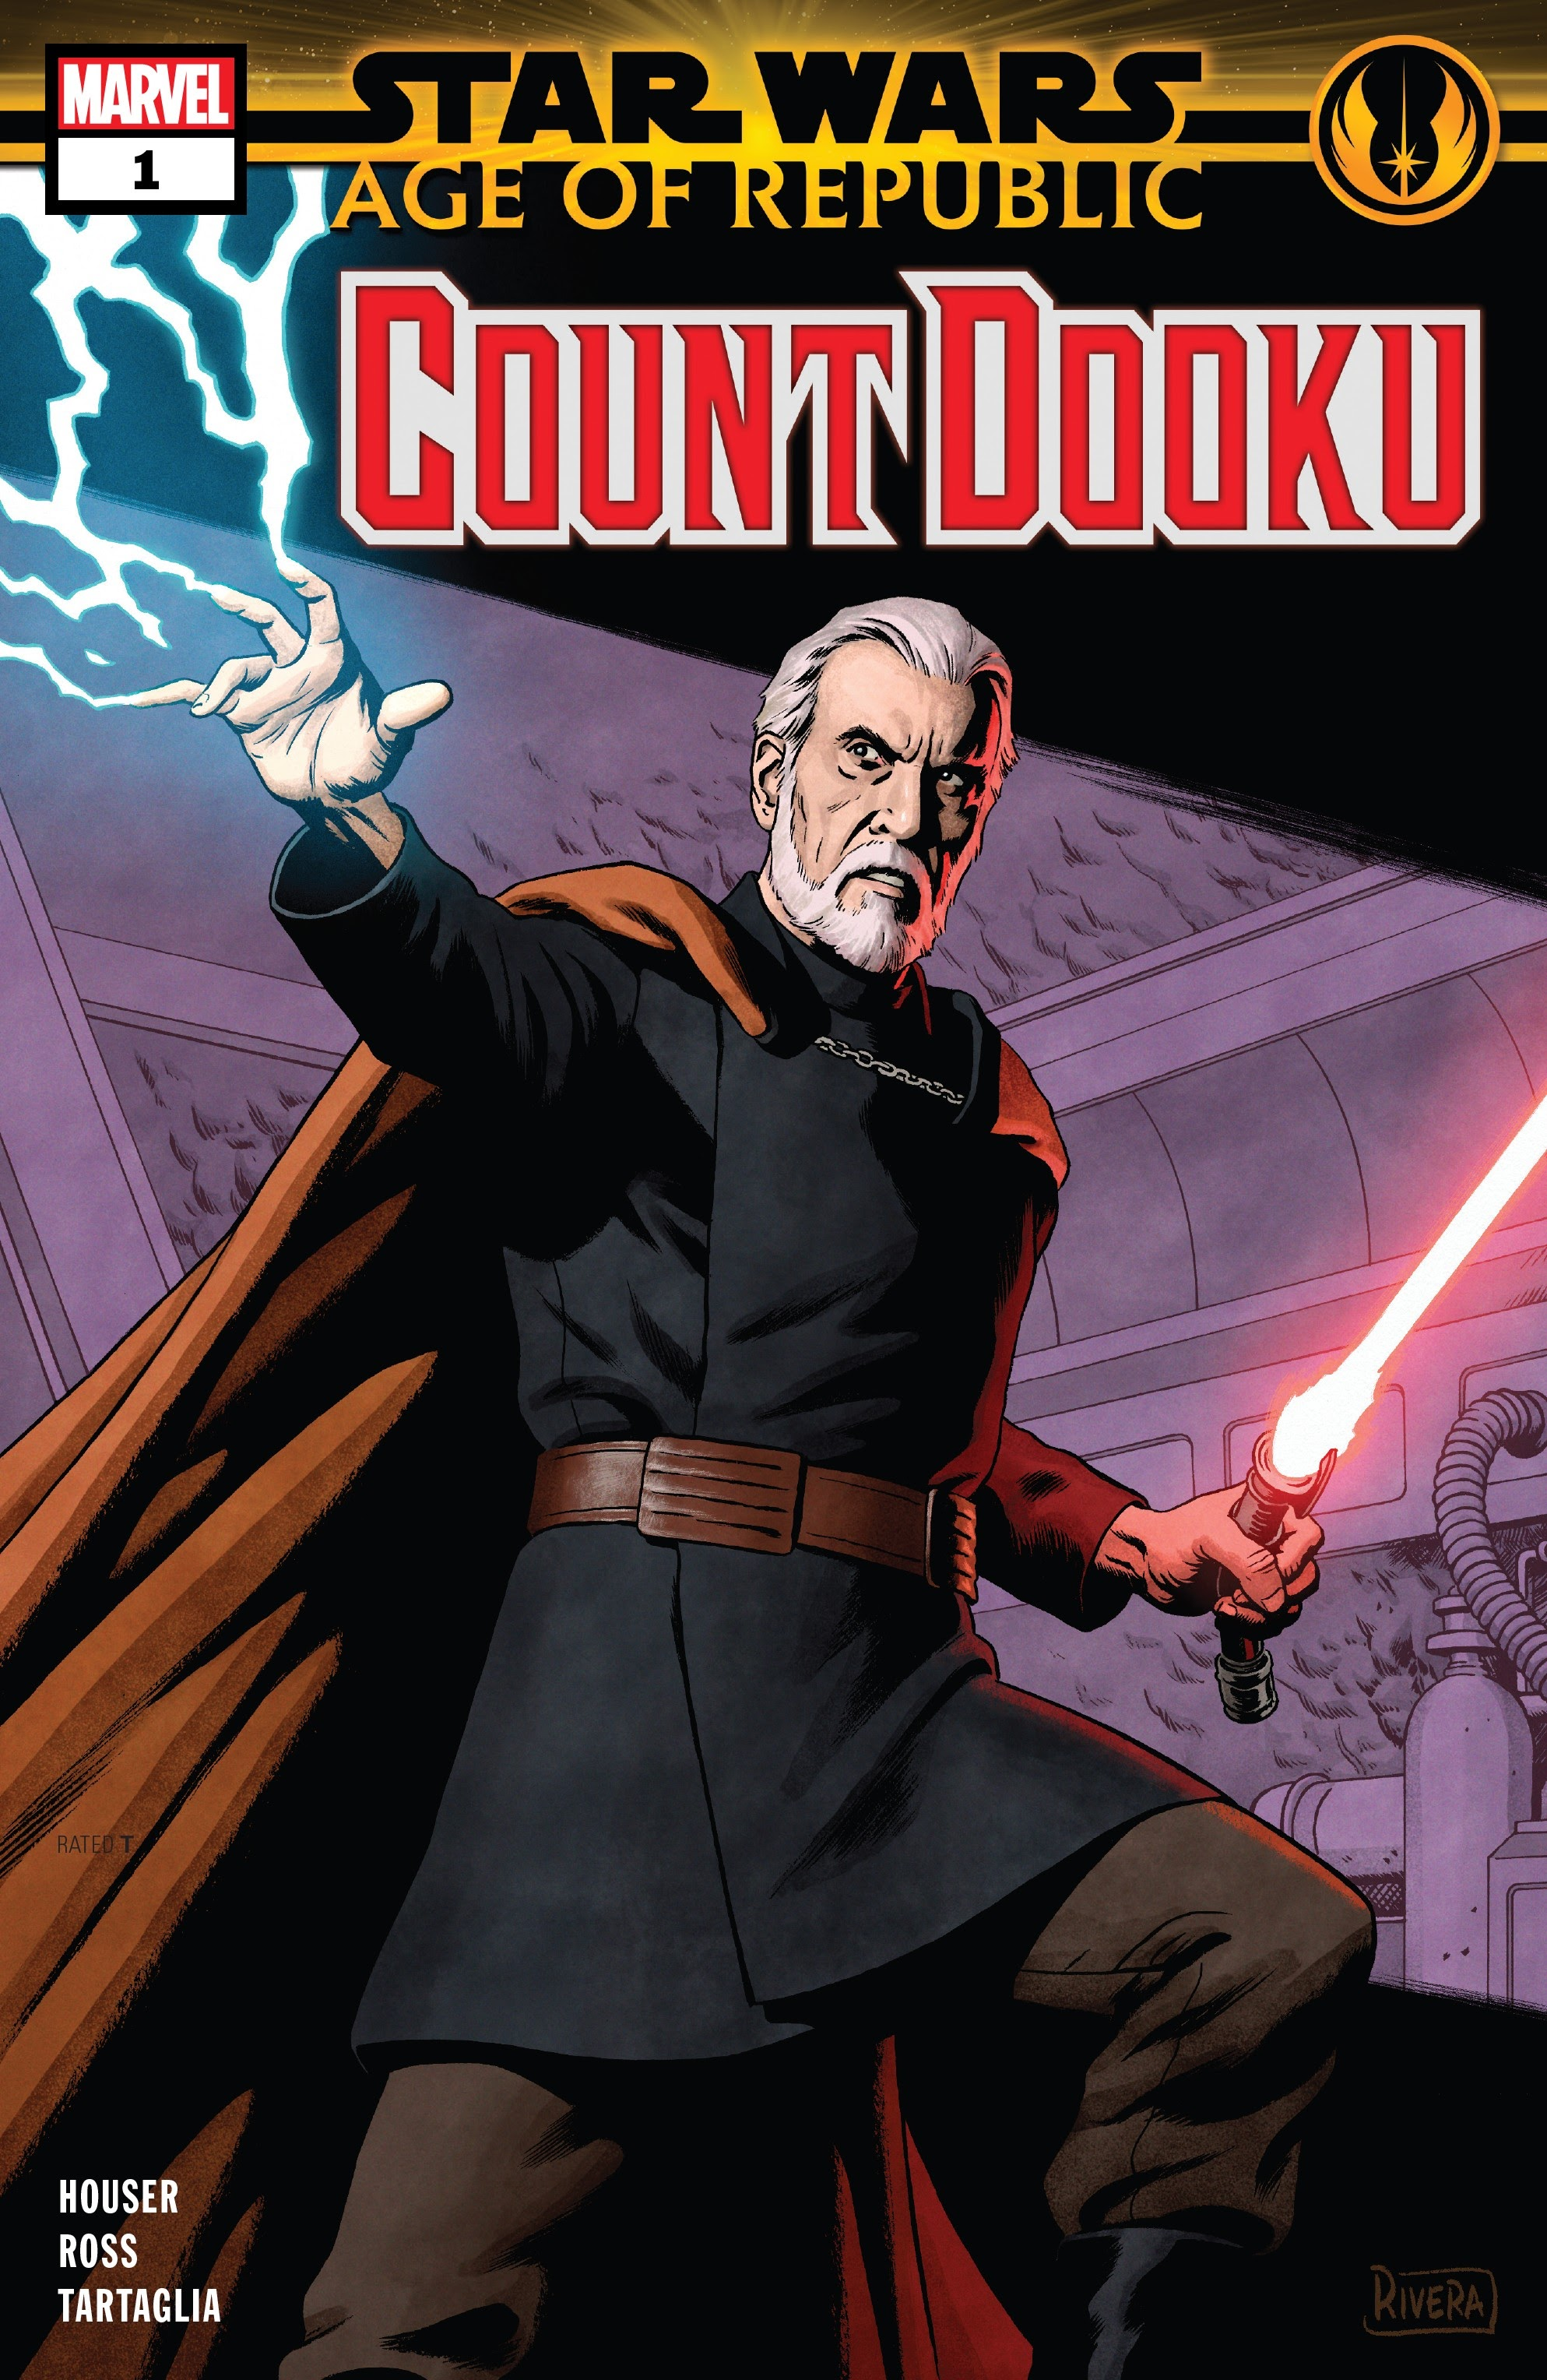 Star Wars: Age of Republic - Count Dooku Full Page 1